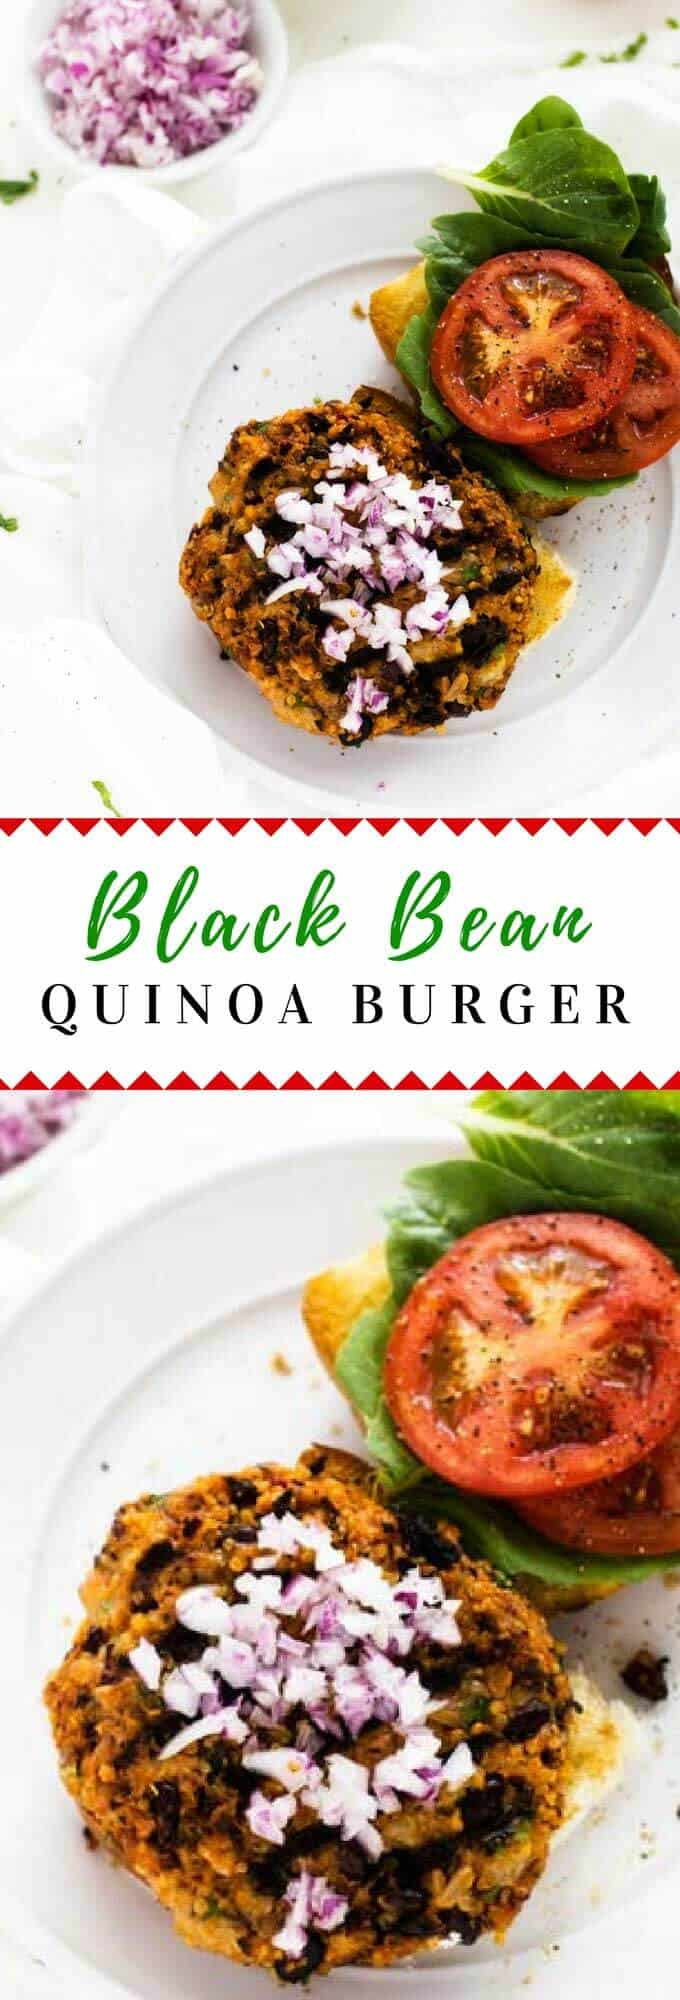 For a healthy lunch or dinner try a Black Bean Quinoa Burger!  This easy recipe is gluten free and loaded with spices.  These quinoa black bean burgers are perfect for Meatless Monday.  Vegetarian with a vegan option. #quinoa #MeatlessMonday #vegetarian #glutenfree